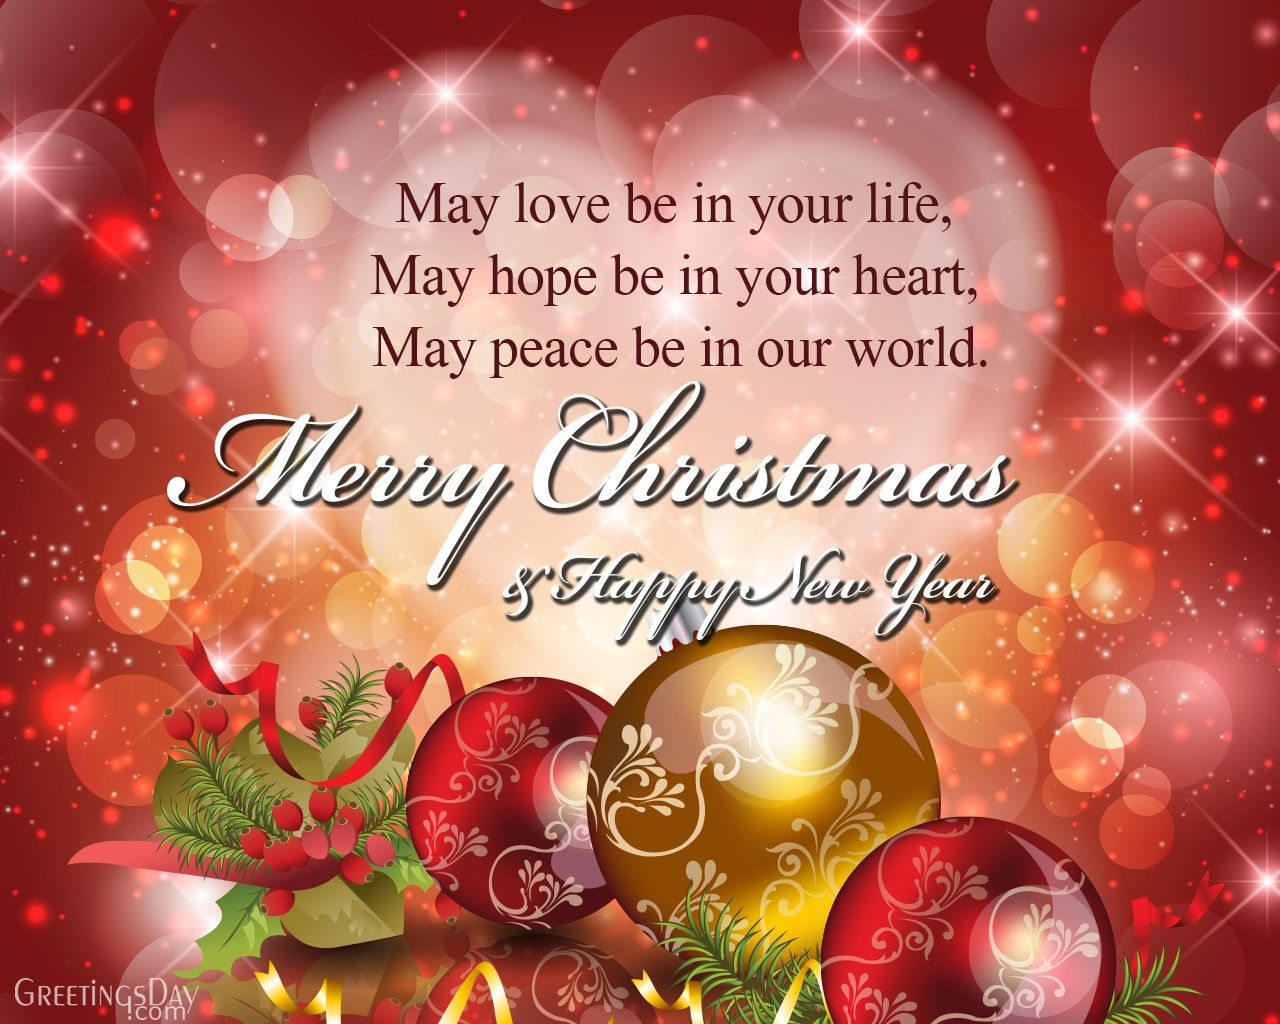 Christmas Wishes Words Of Wisdom Pinterest Christmas Words